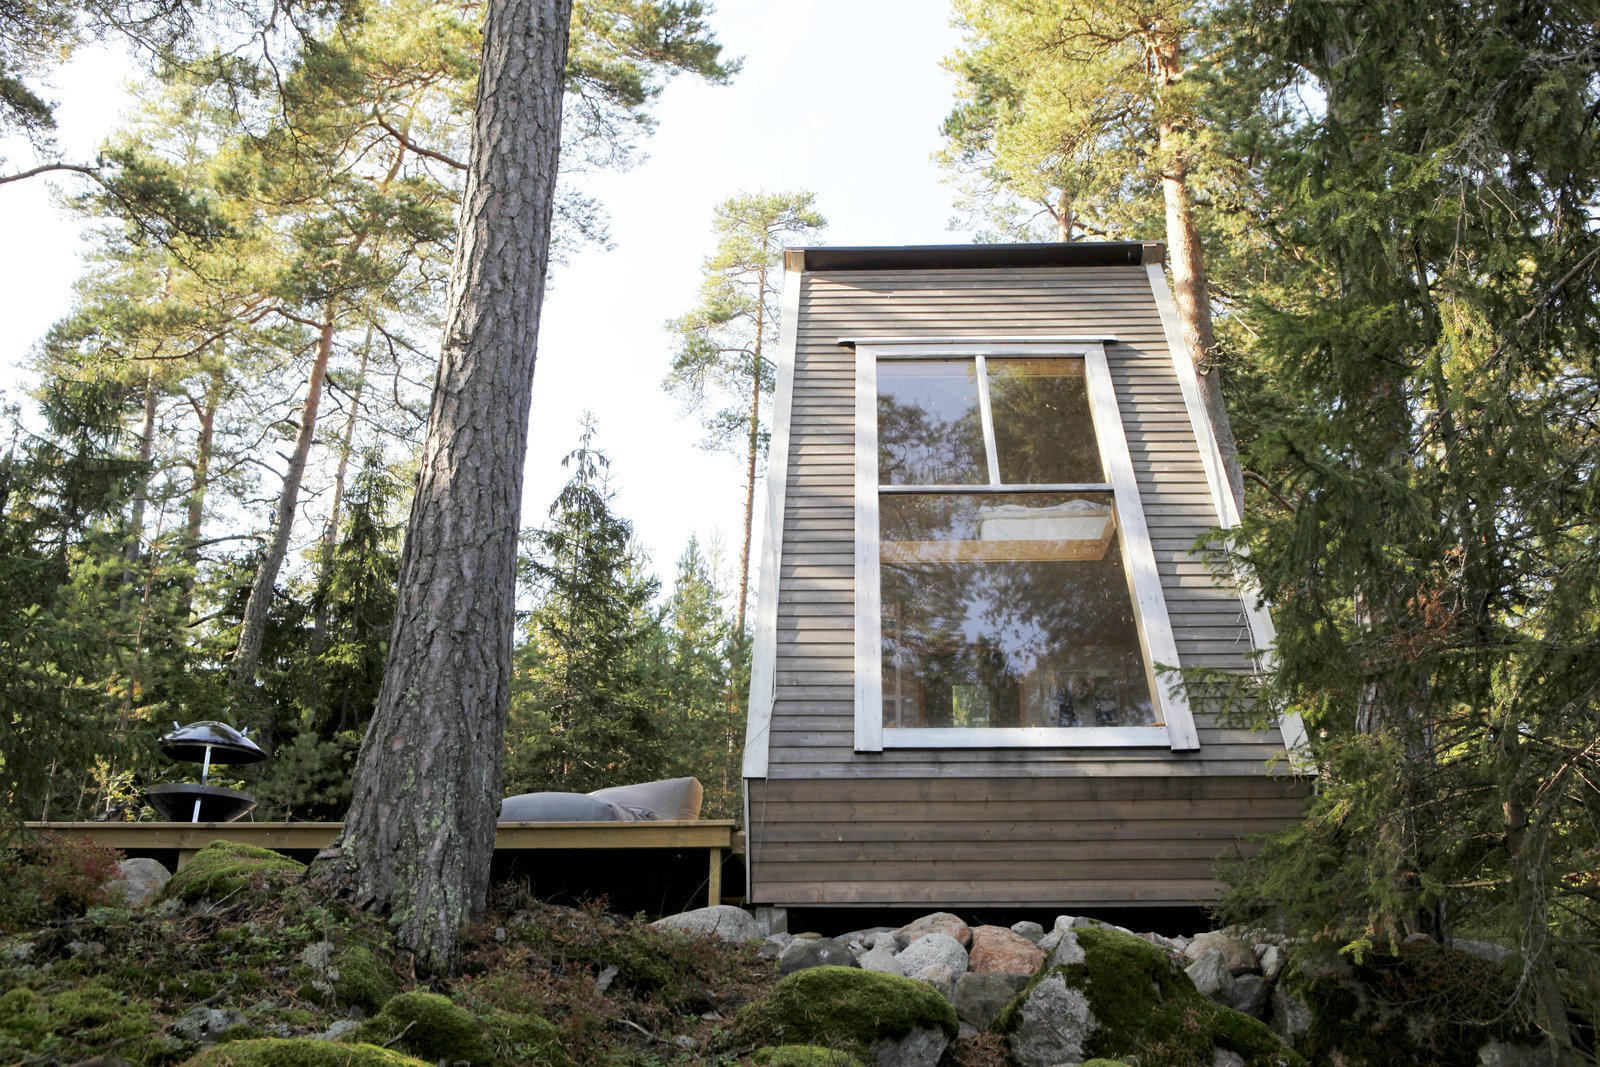 Nido Tiny Cabin by Robert Falck exterior three panel window with white siding in forest landscape